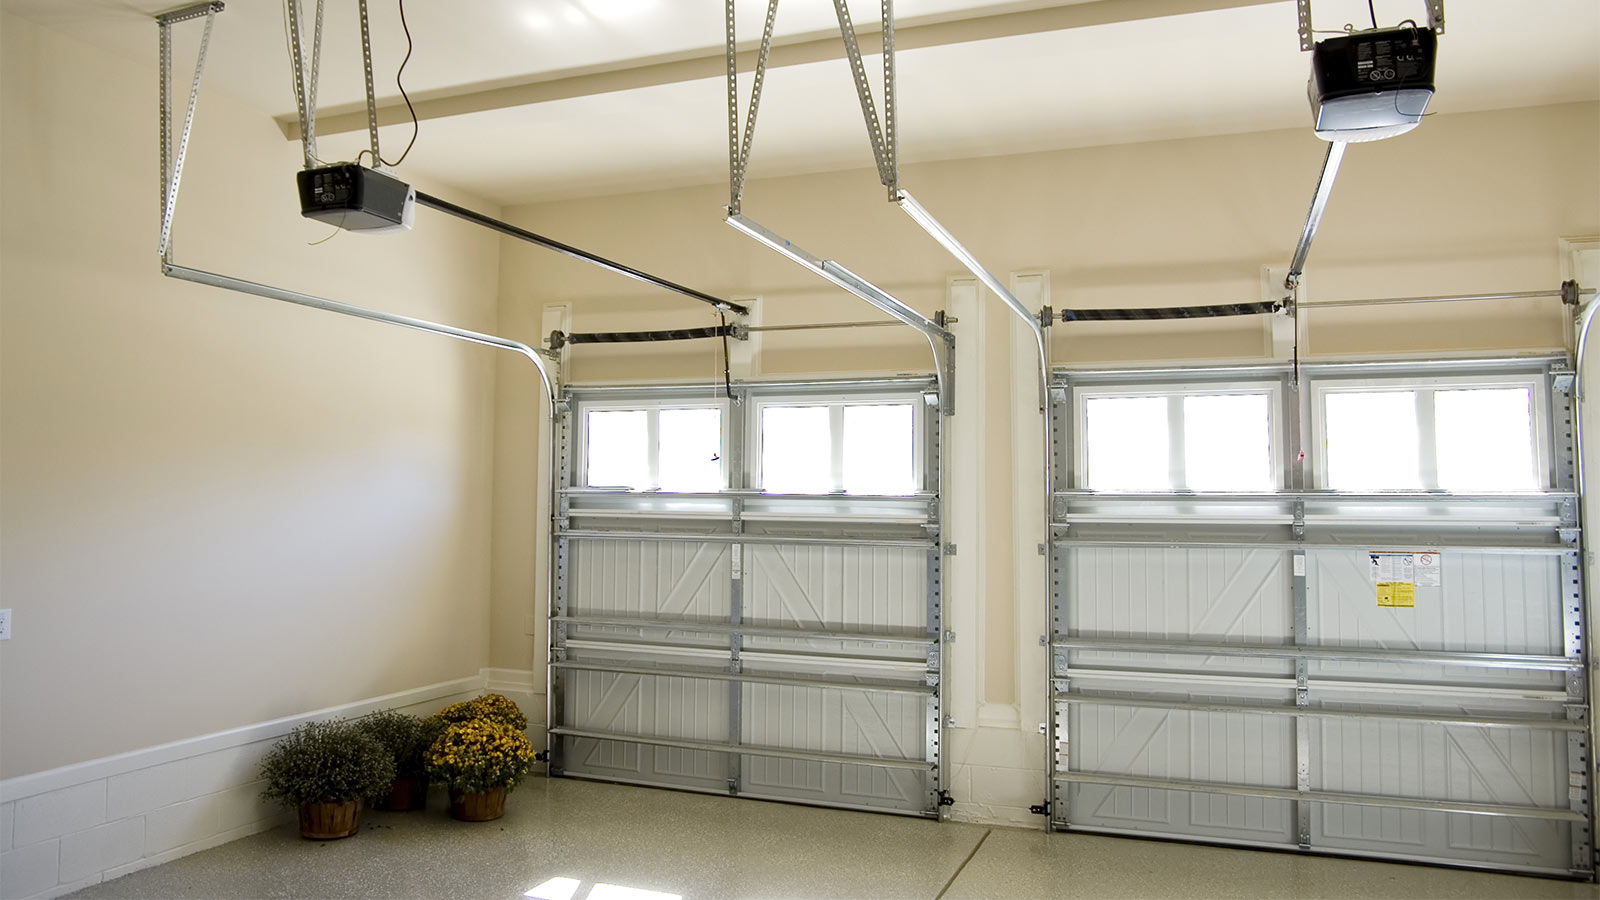 Sectional Garage Doors from Electric Gates Colchester suppliers.